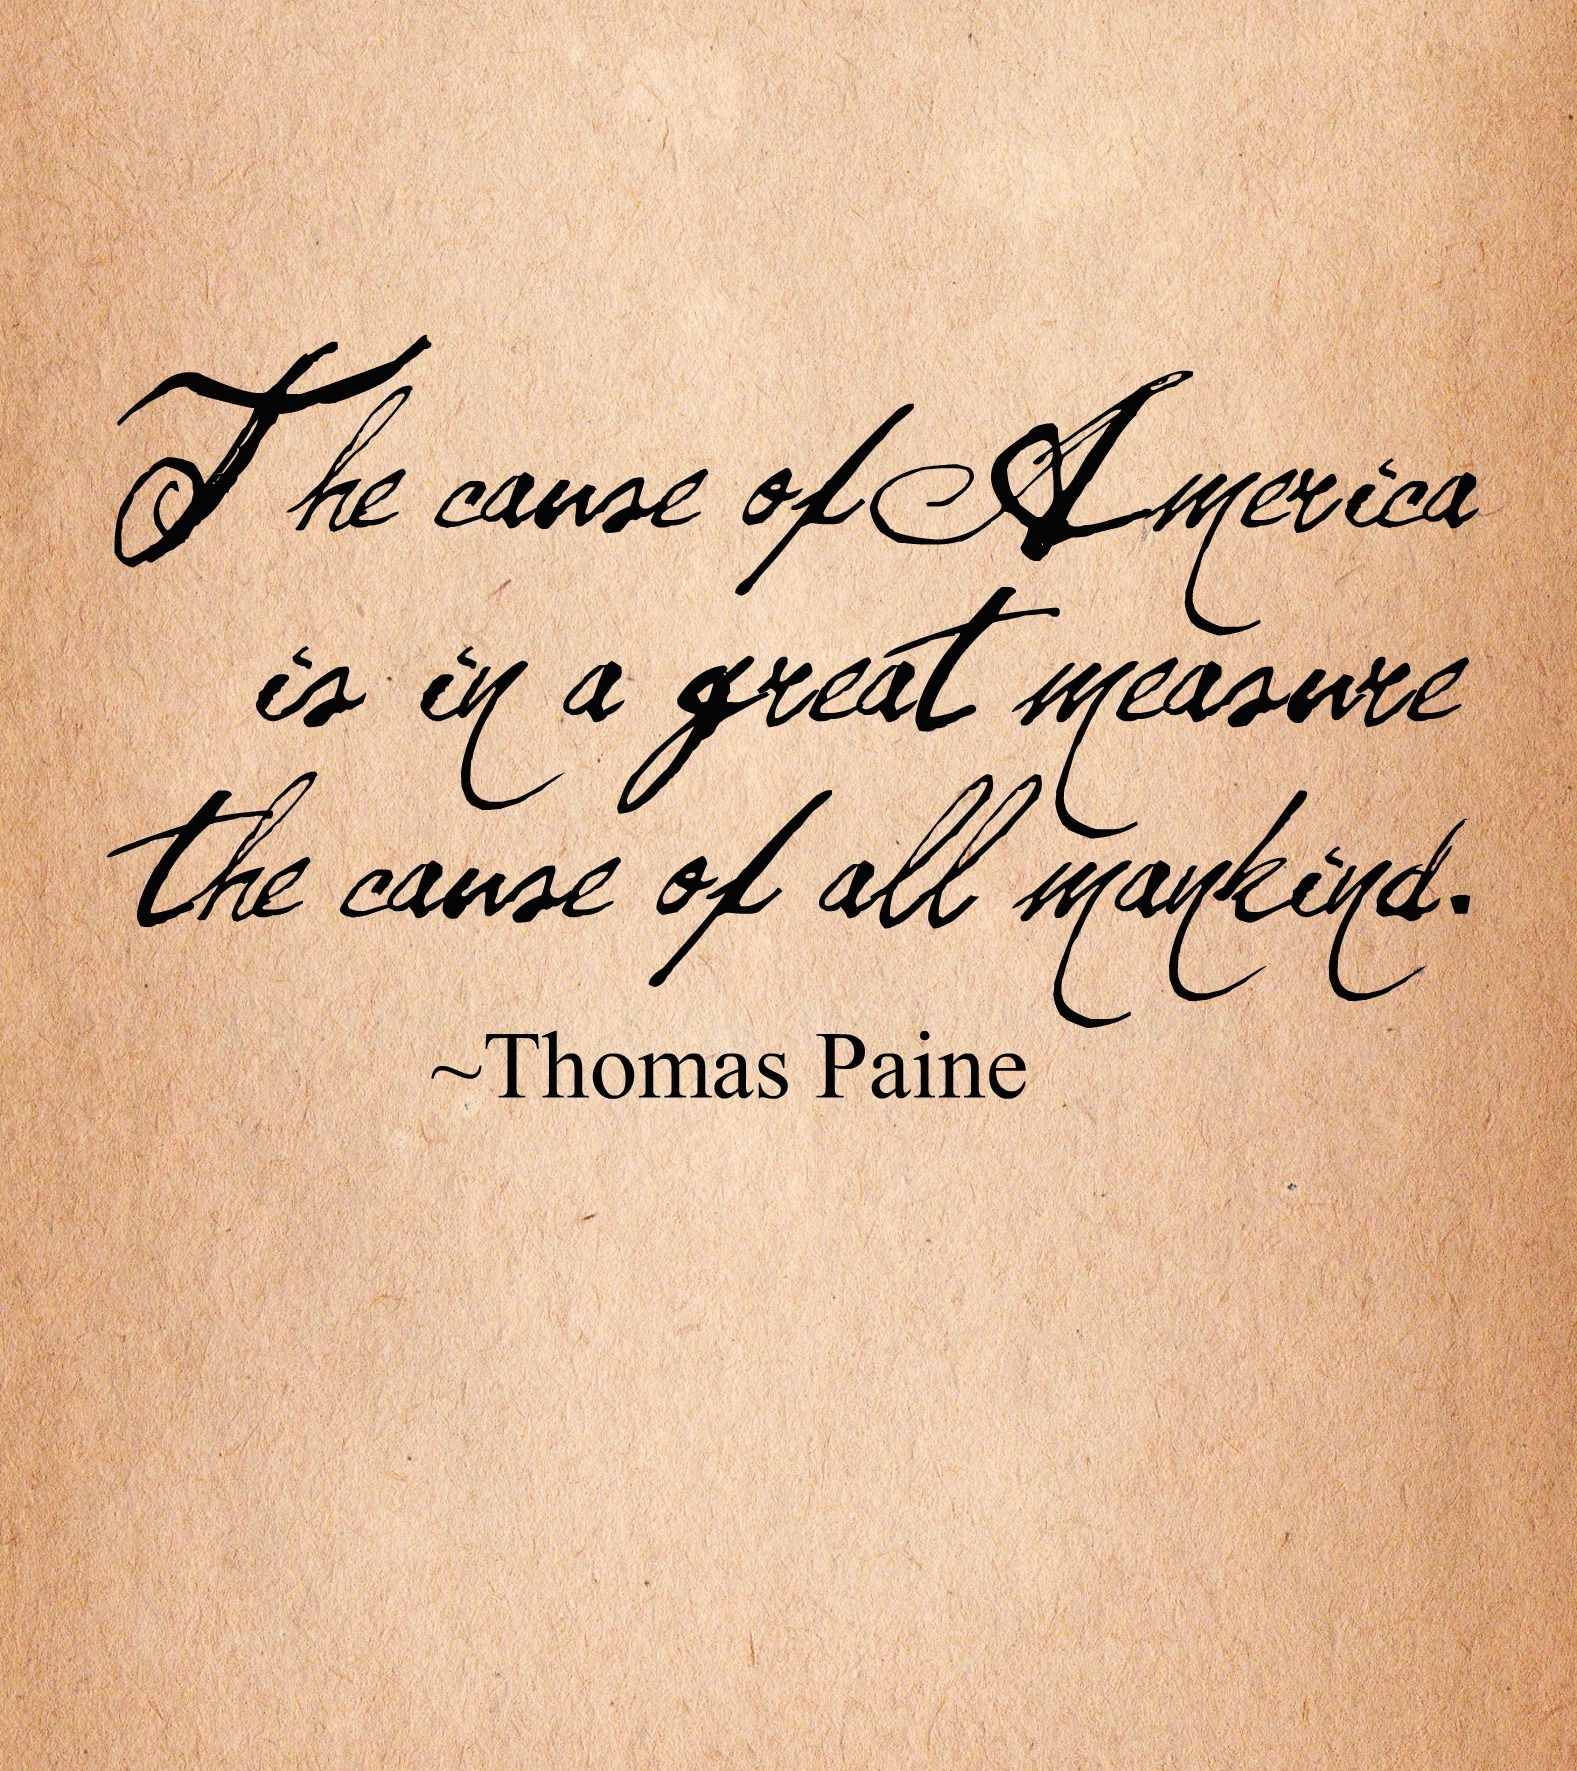 thomas paine an american philosopher essay Thomas paine (or pain february 9, 1737 [os january 29, 1736] – june 8, 1809) was an english-american political activist, philosopher, political theorist, and revolutionary one of the.